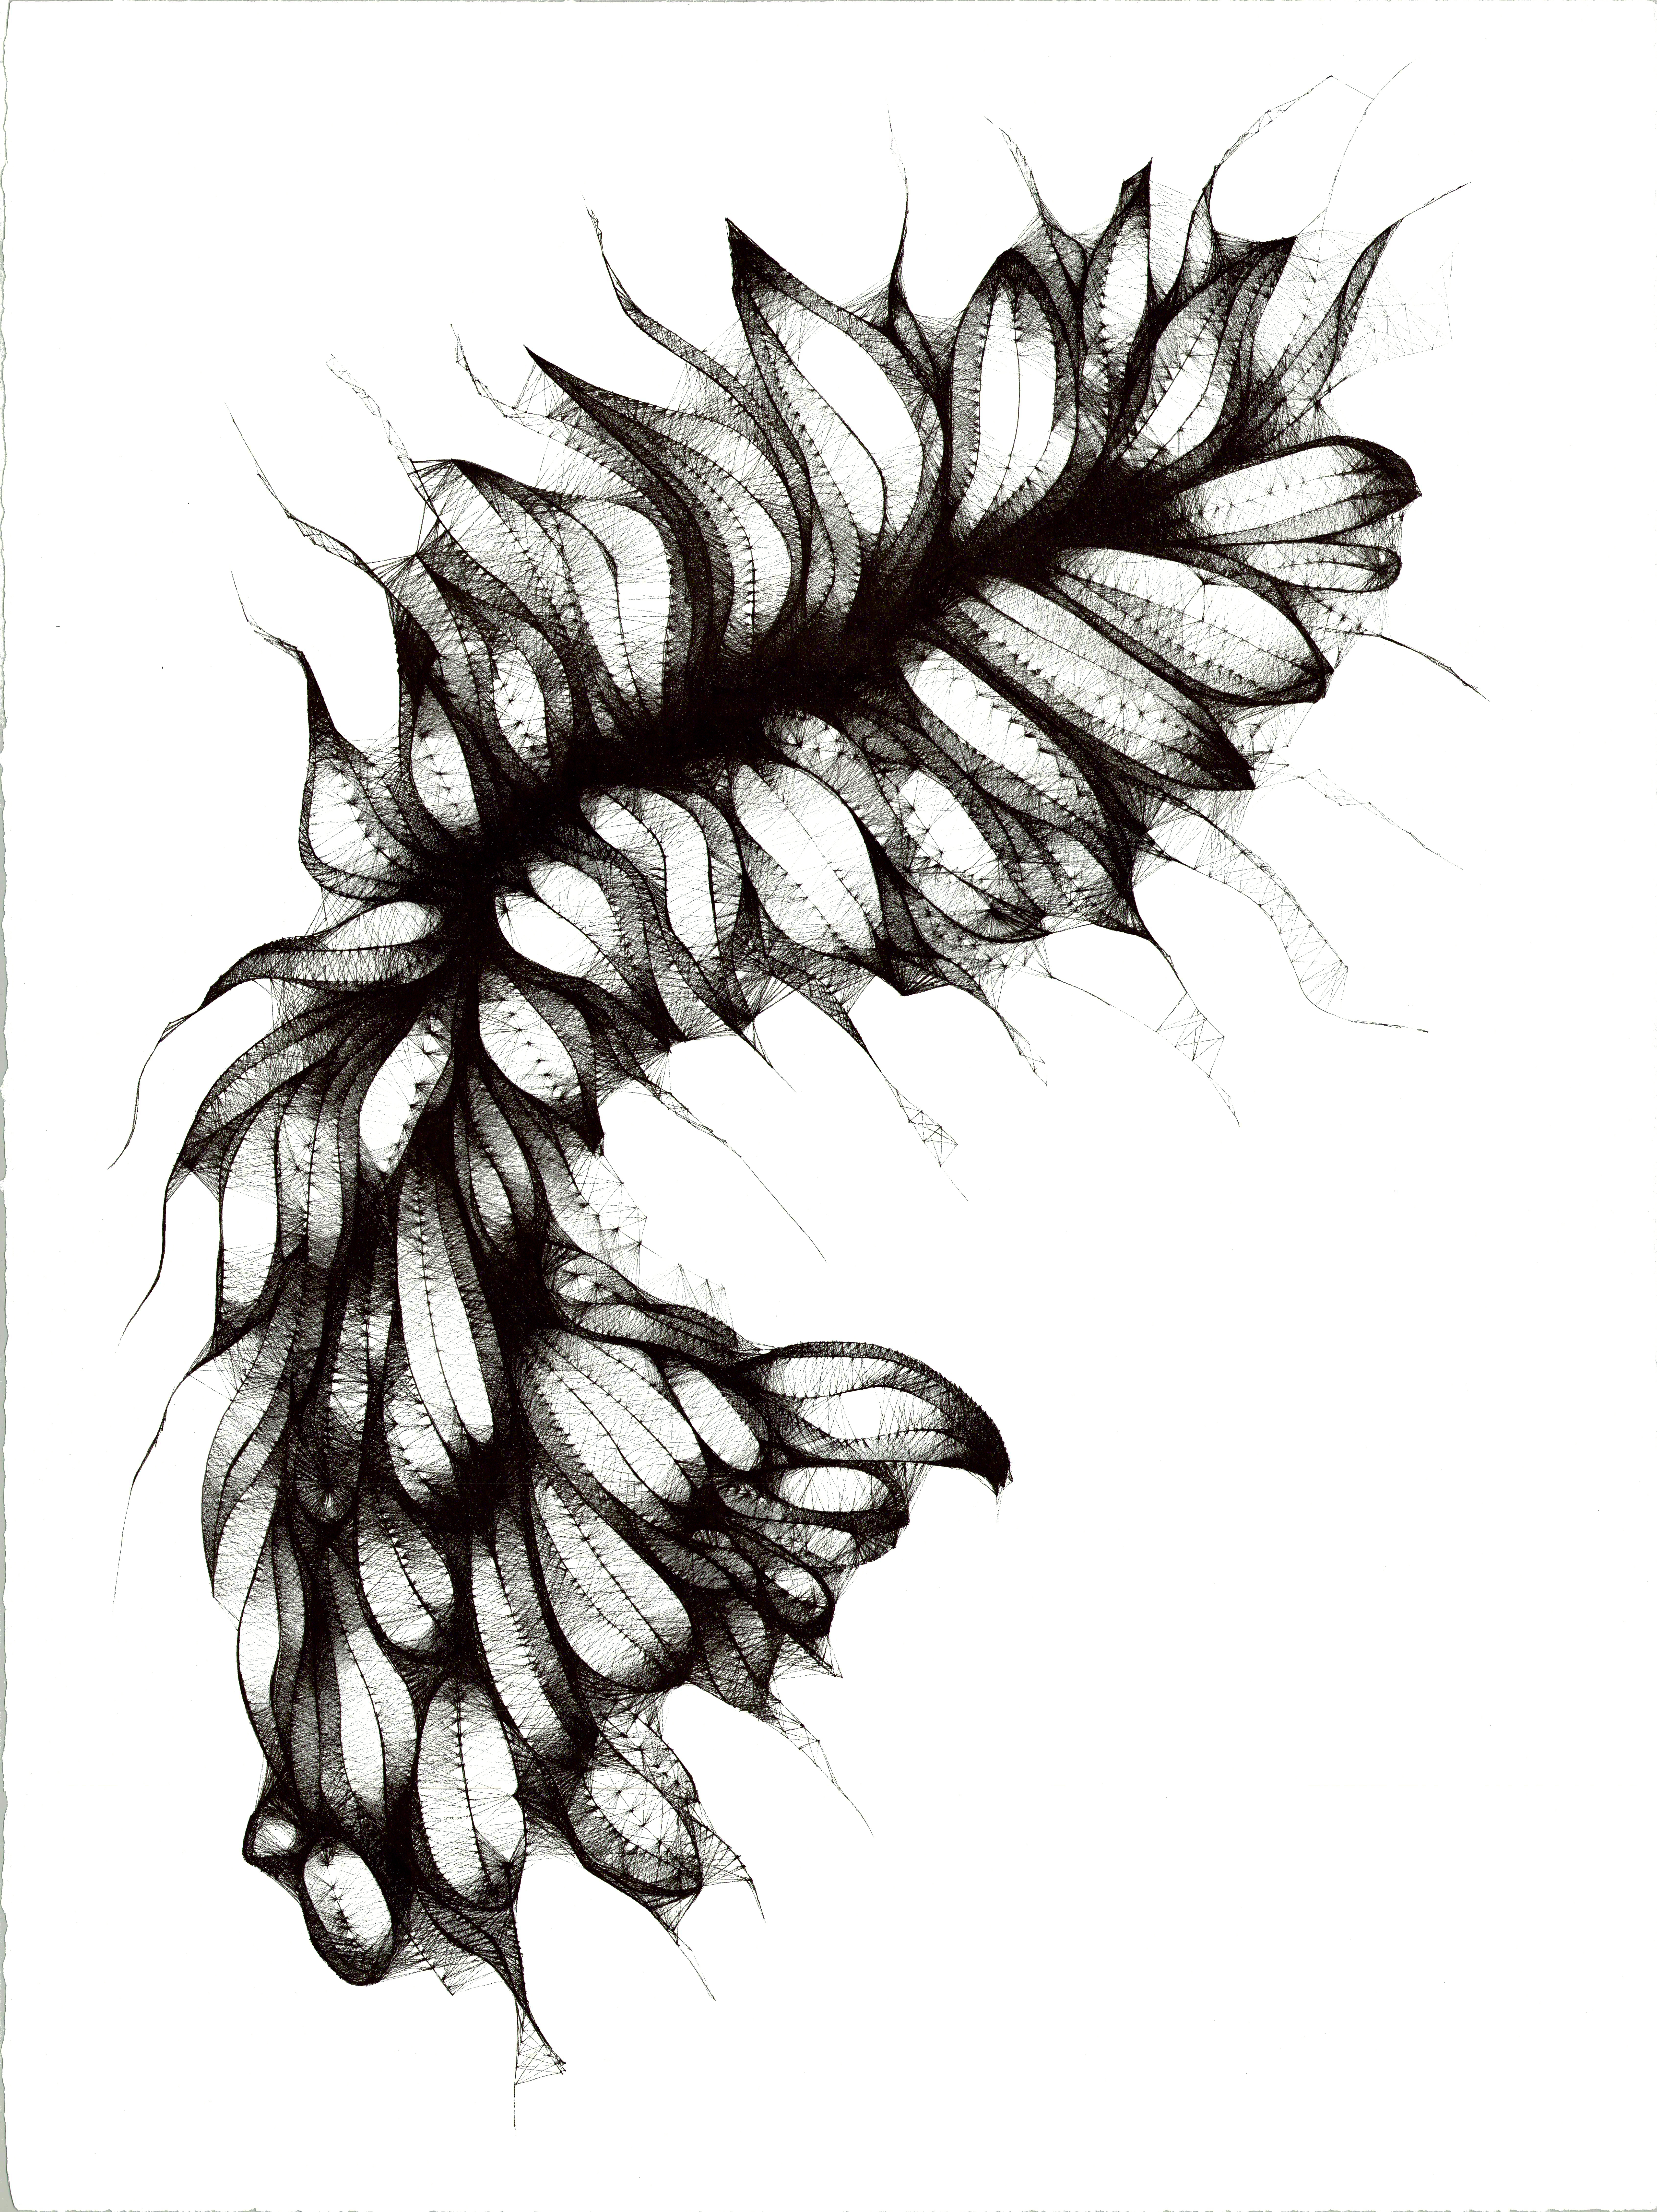 Abstract pen drawing